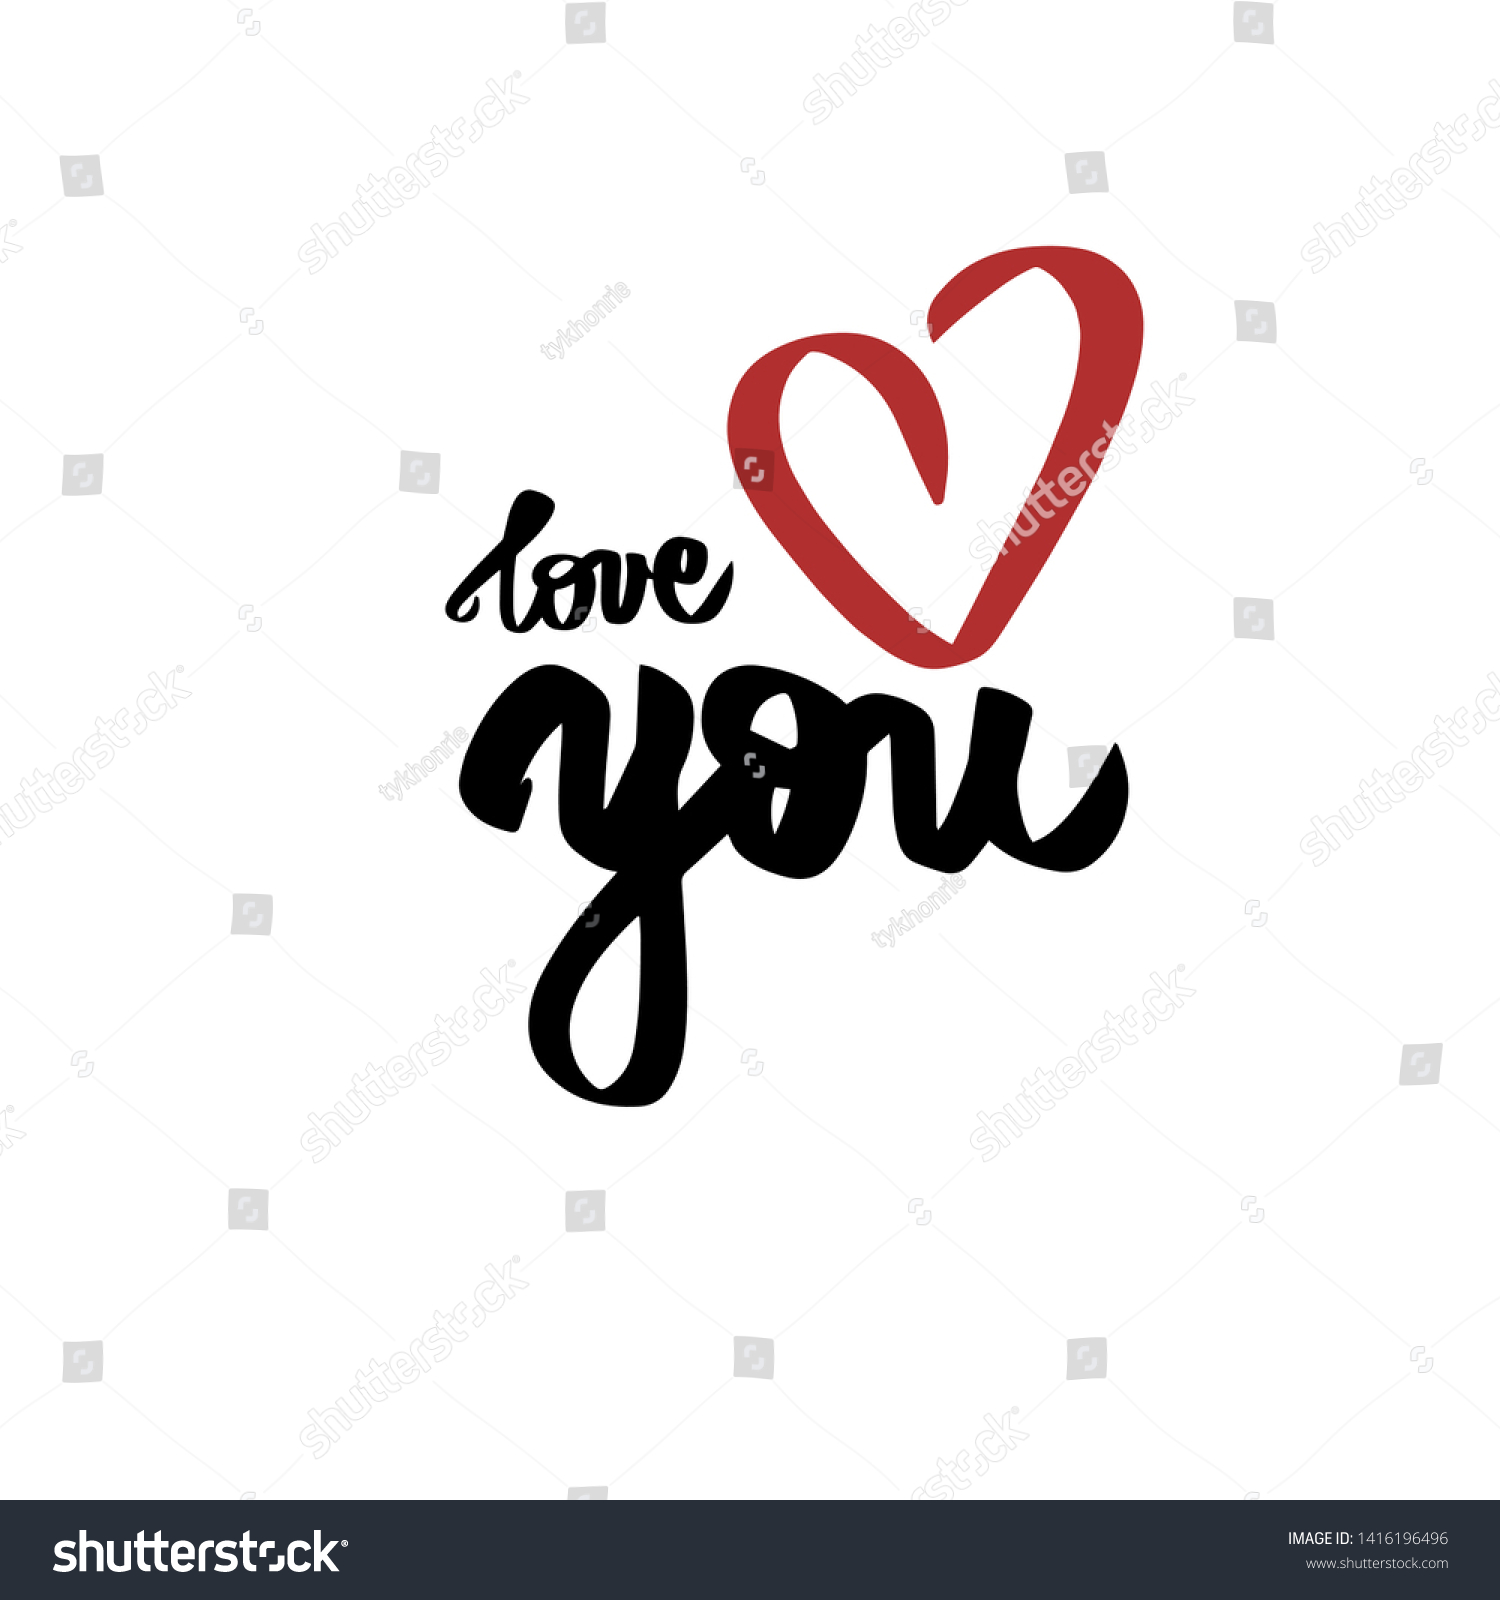 stock-vector-love-you-black-lettering-wi